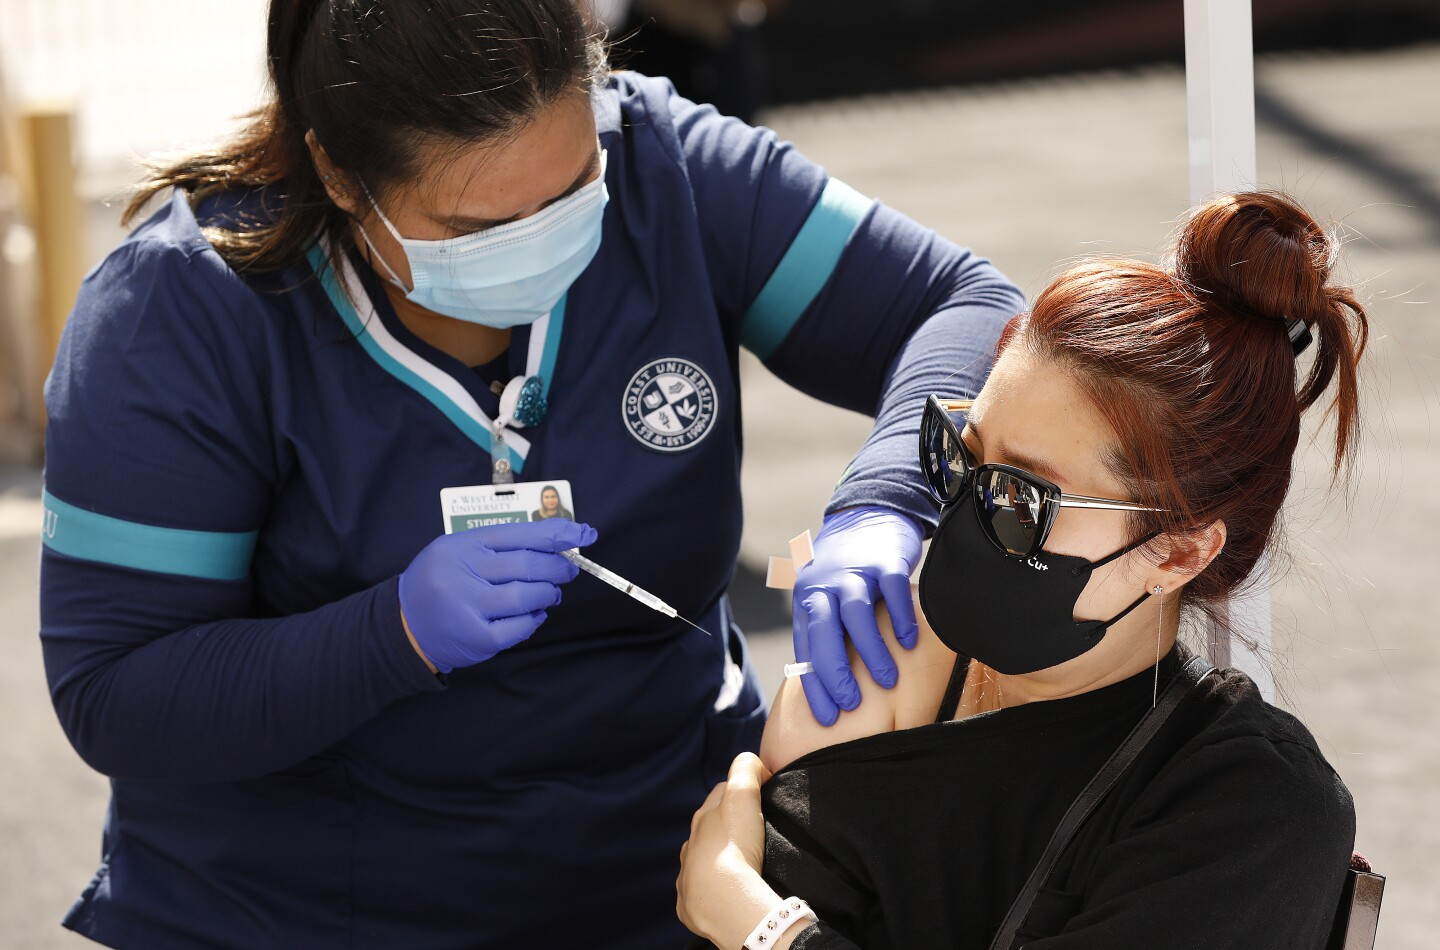 A woman in a black t-shirt gets a vaccine administered on her right arm by a woman in dark blue scrubs.